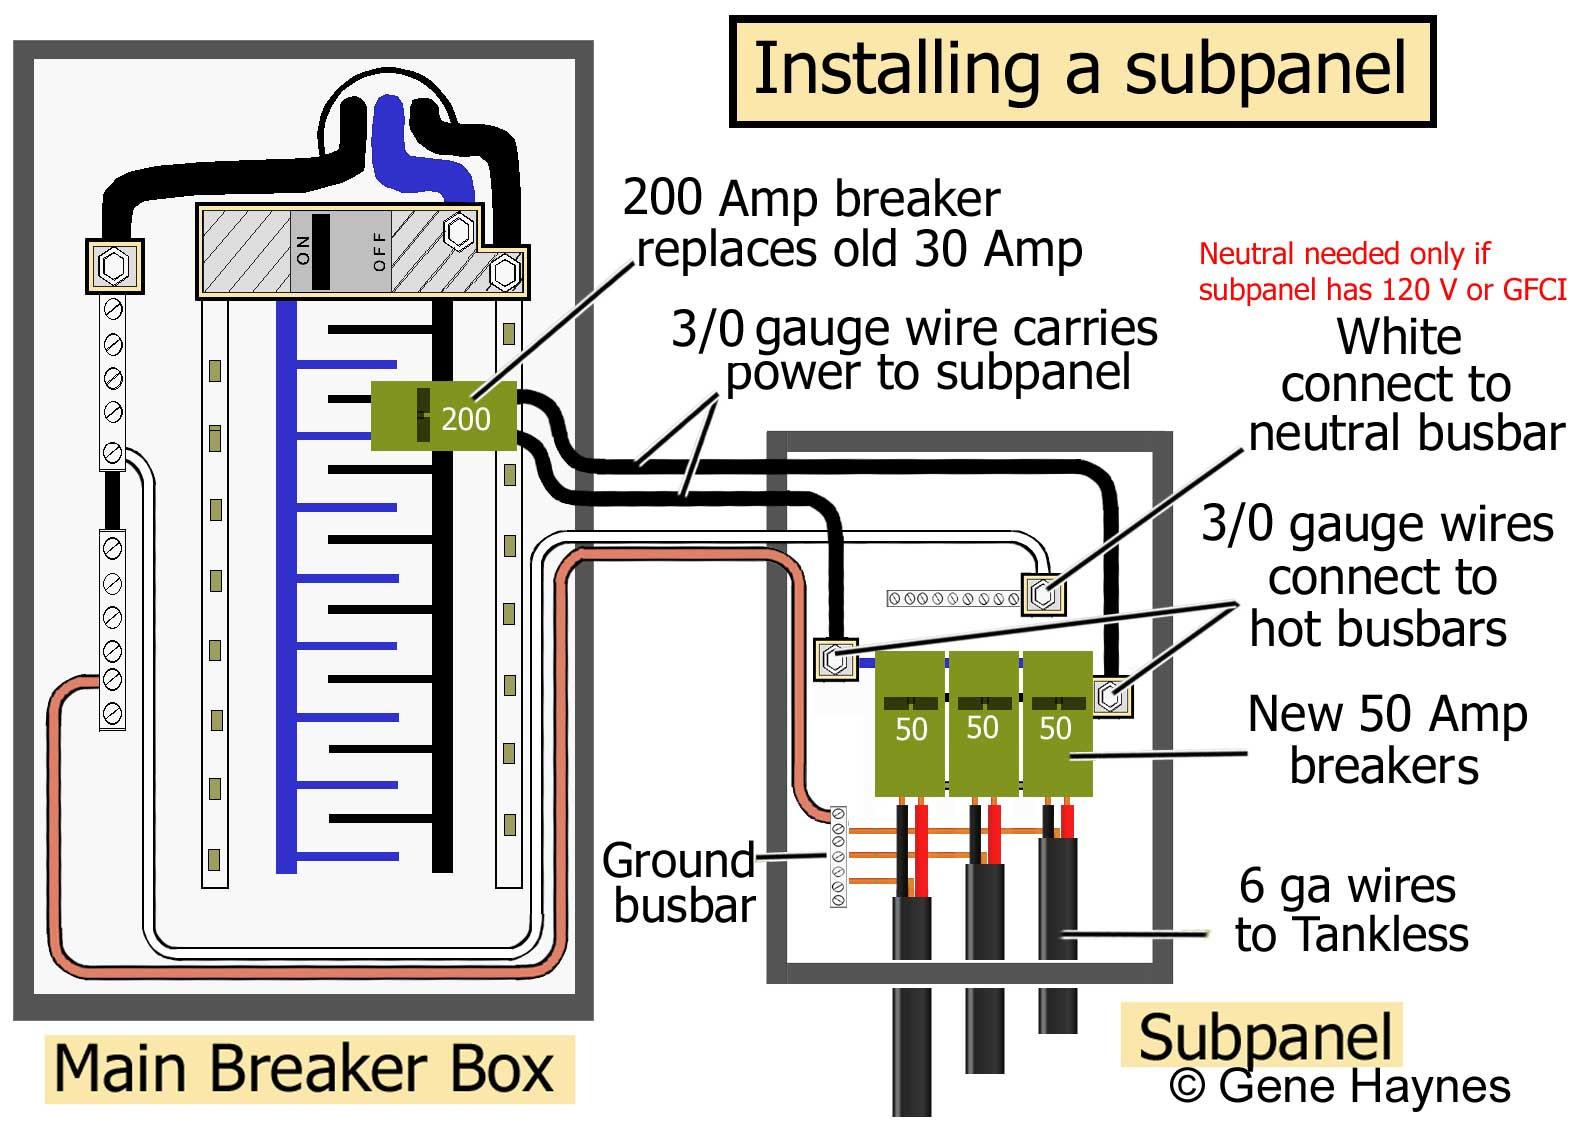 Diagram Of 100 Amp Breaker Box Wiring | Wiring Diagram - 200 Amp Breaker Box Wiring Diagram